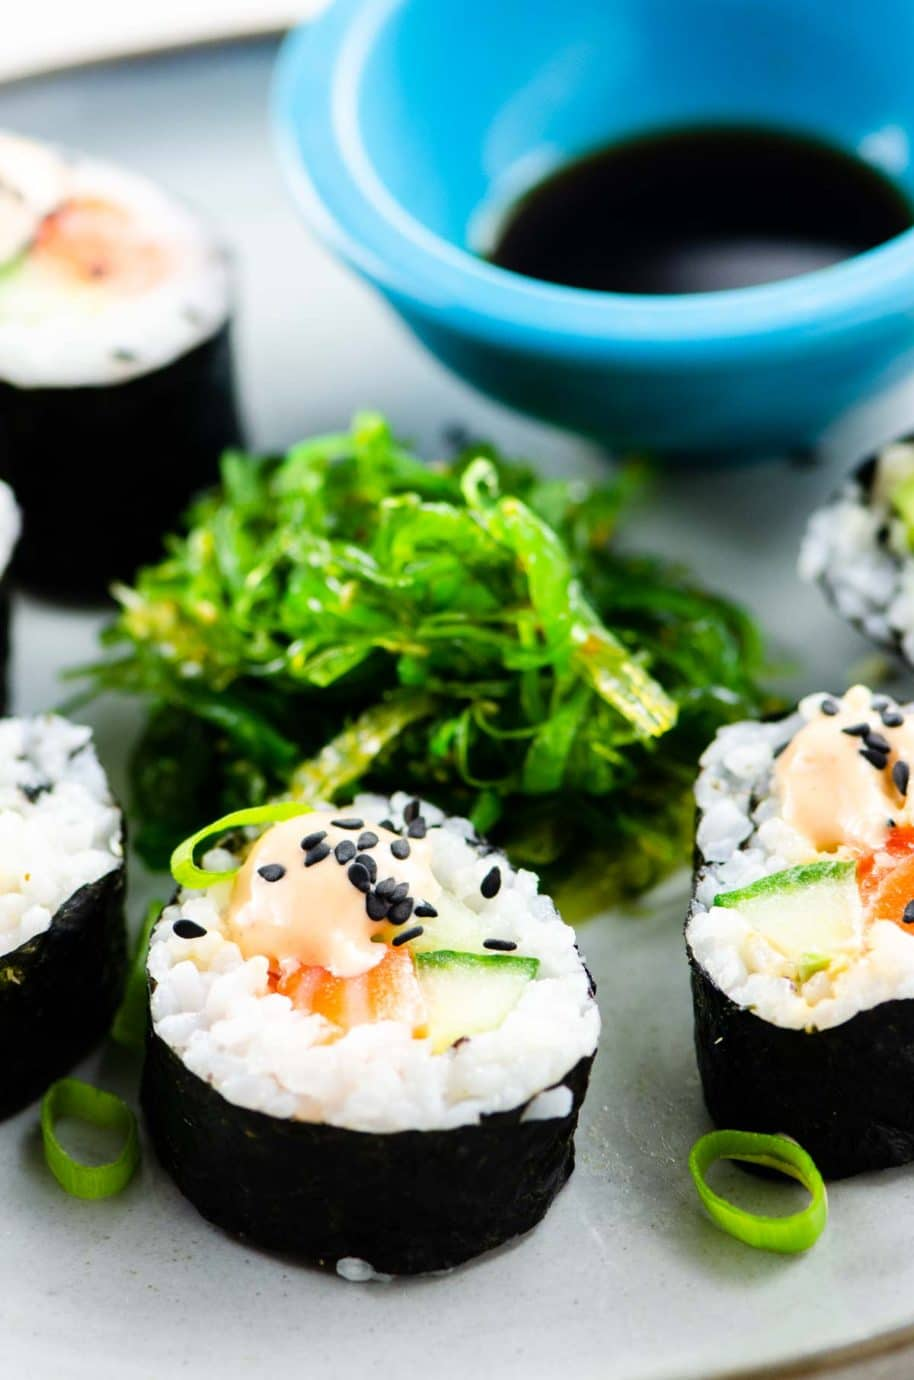 homemade sushi: spicy salmon roll, seaweed salad, and soy sauce